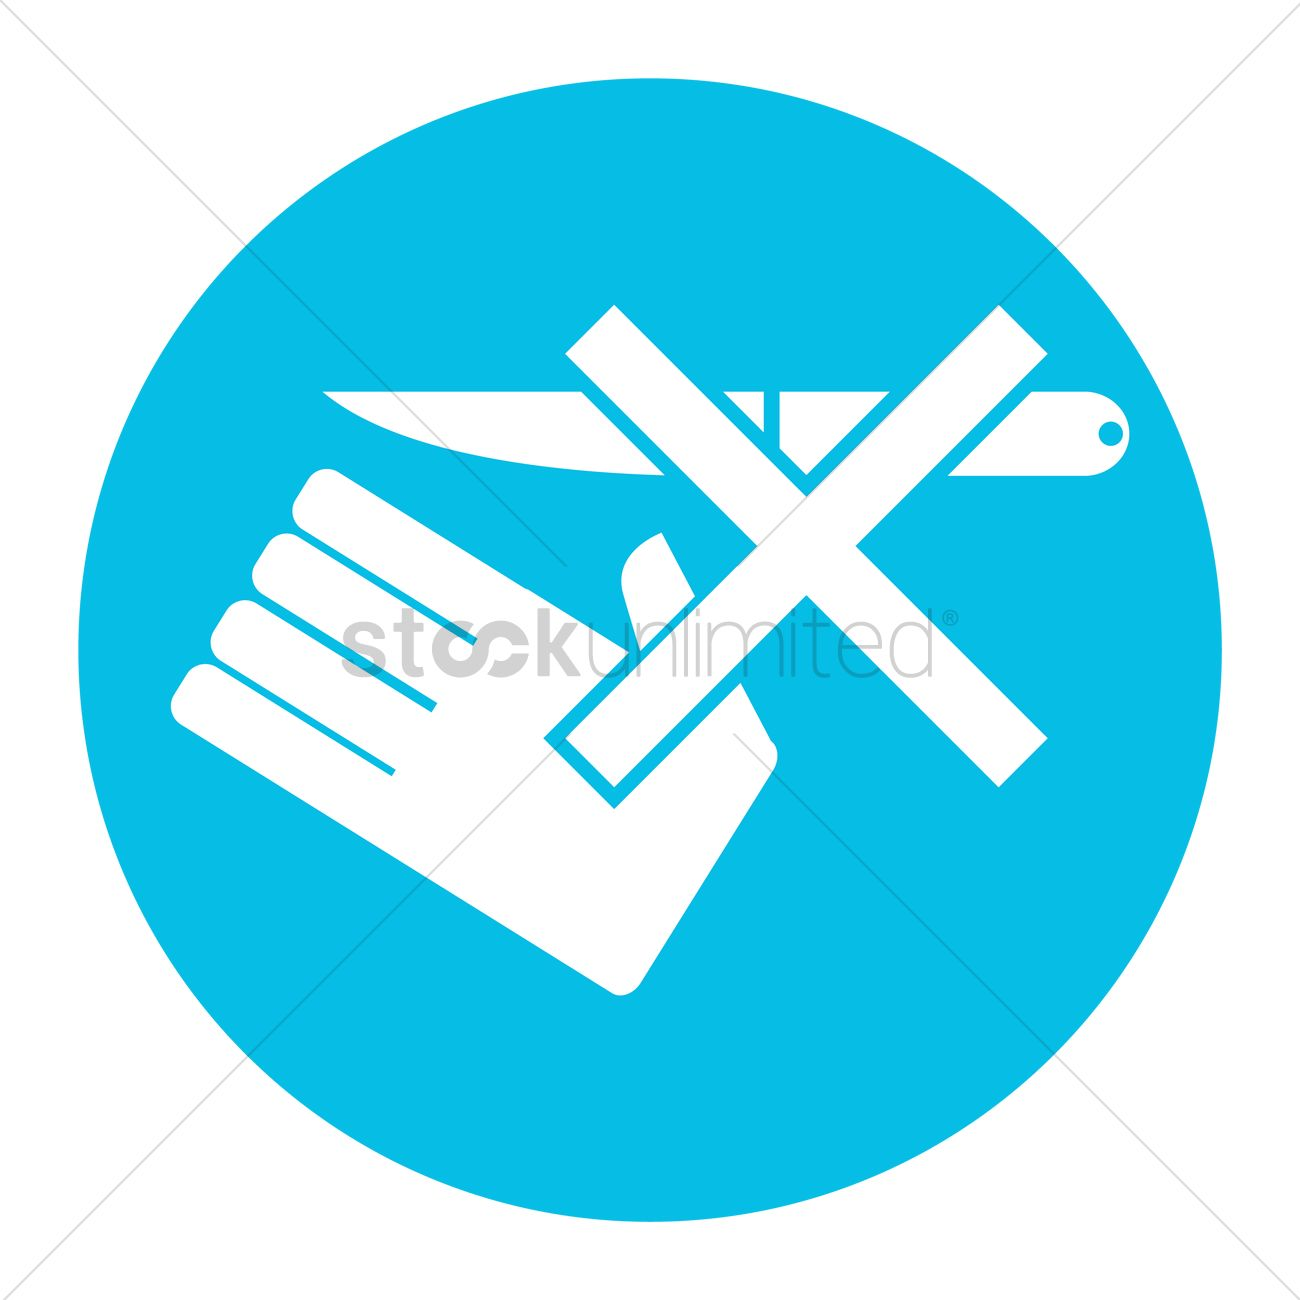 Dont Use Knife Without Wearing Gloves Vector Image 1516465